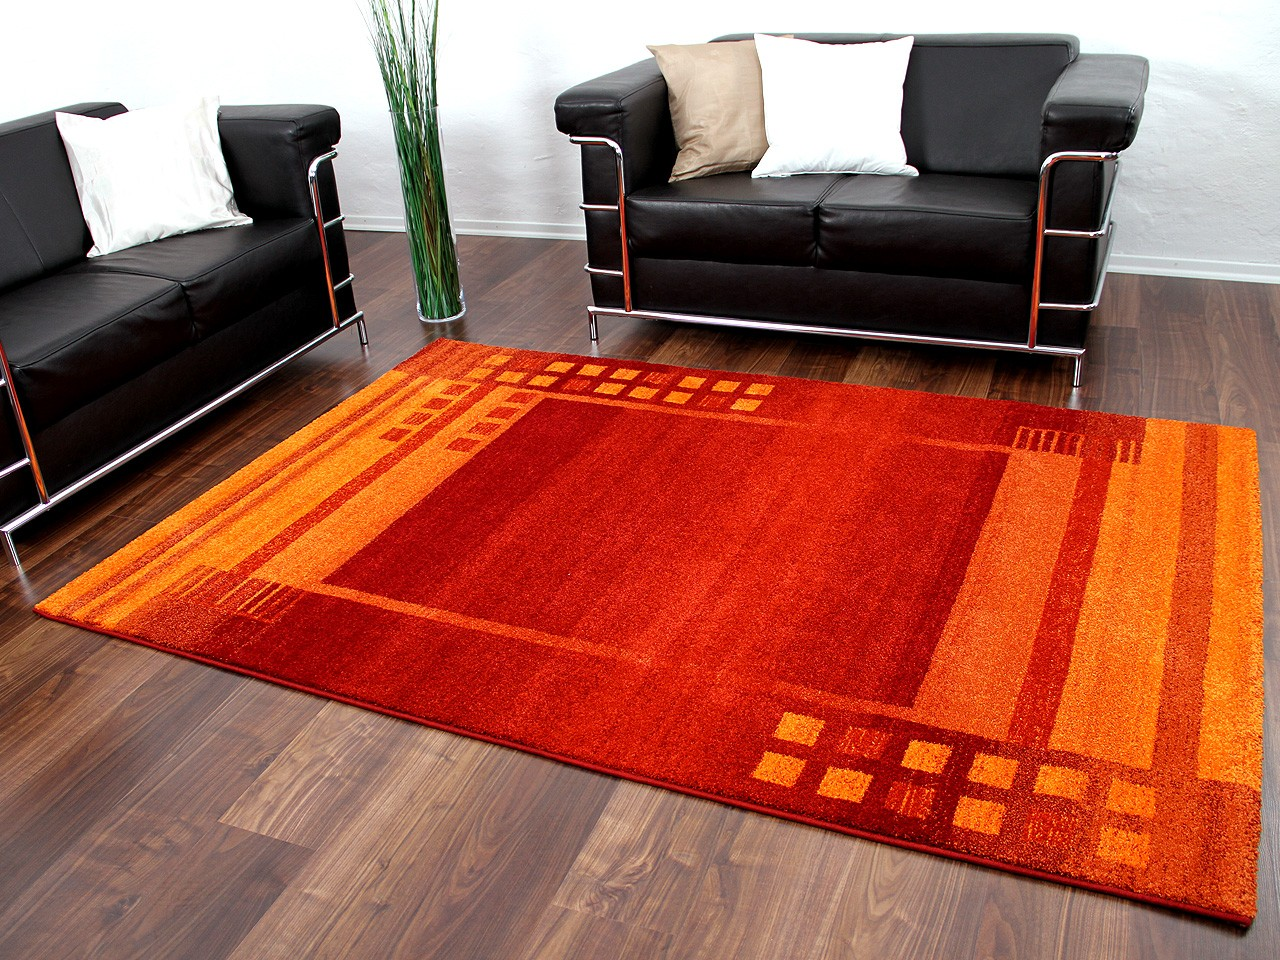 Designer Teppich Gabbeh Rot Orange Bordüre